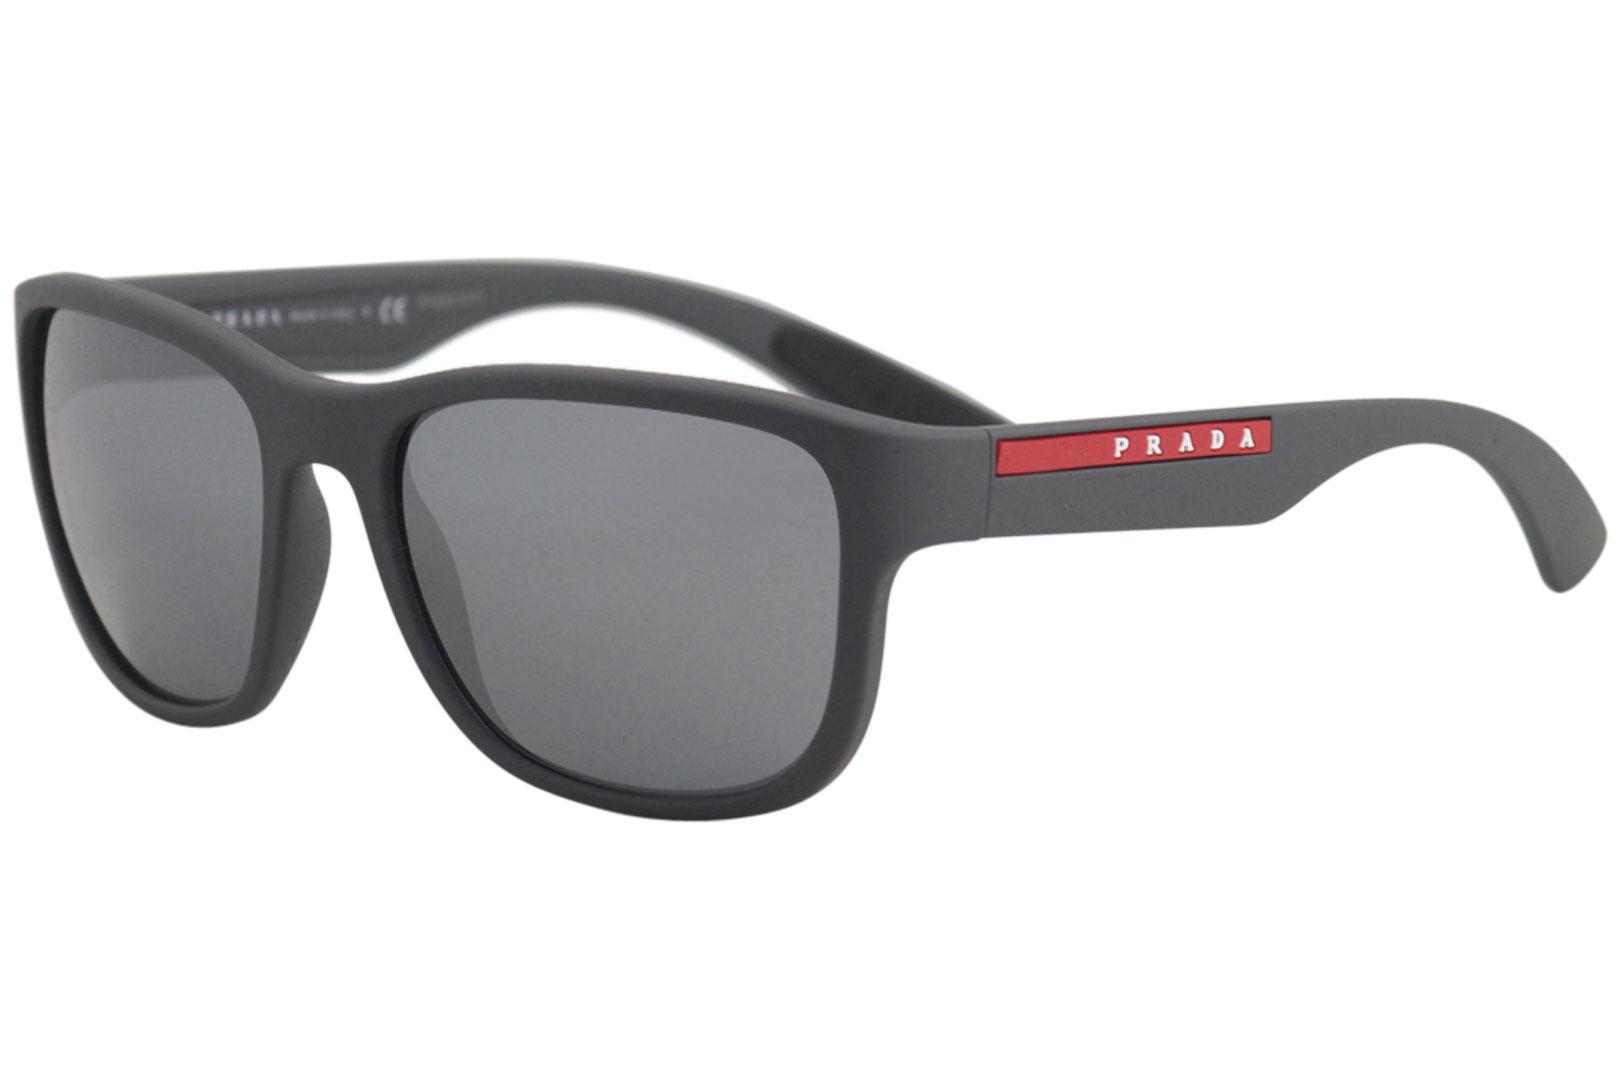 e40e49abf34f Prada Men s Linea Rossa SPS01U SPS 01 U Fashion Square Sunglasses by Prada.  Touch to zoom